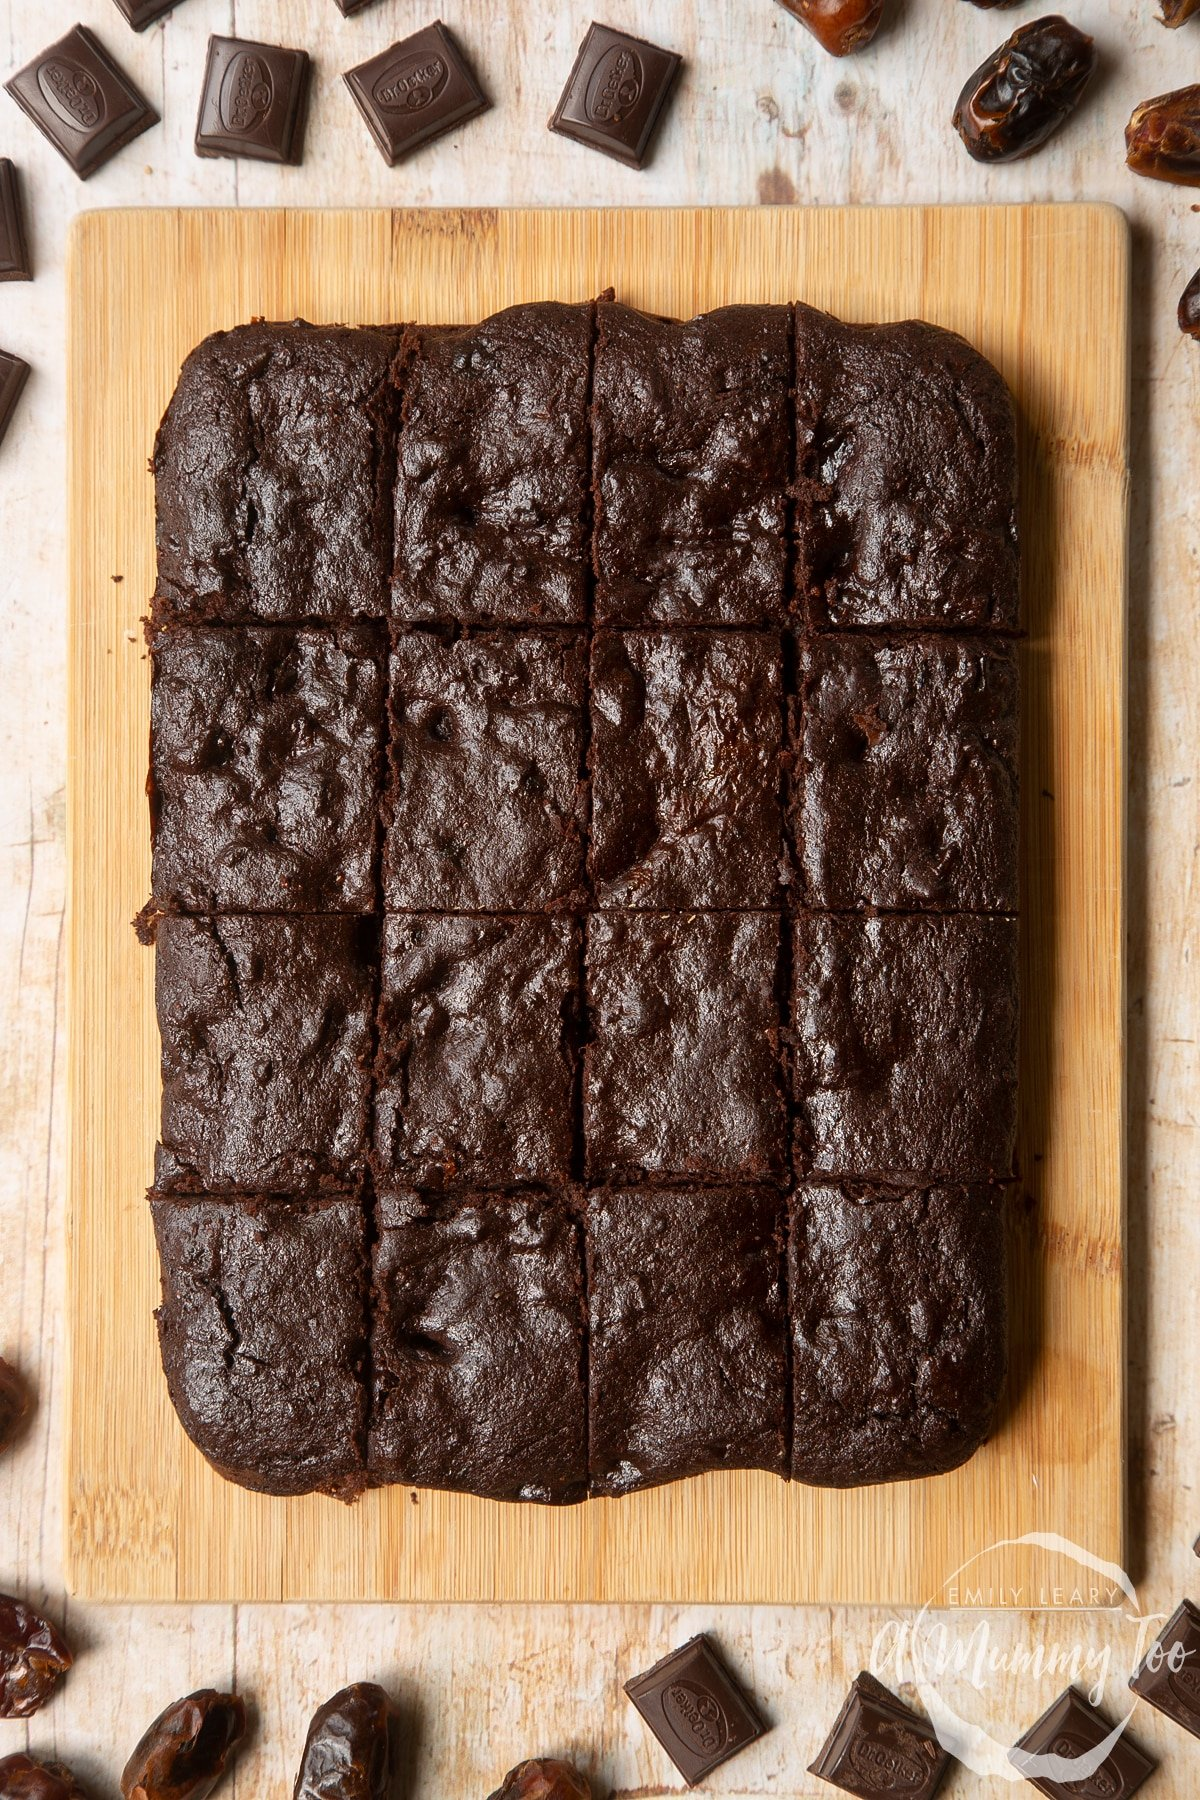 16 whole grain brownies made with dates and dark chocolate arranged on a pale wooden board.